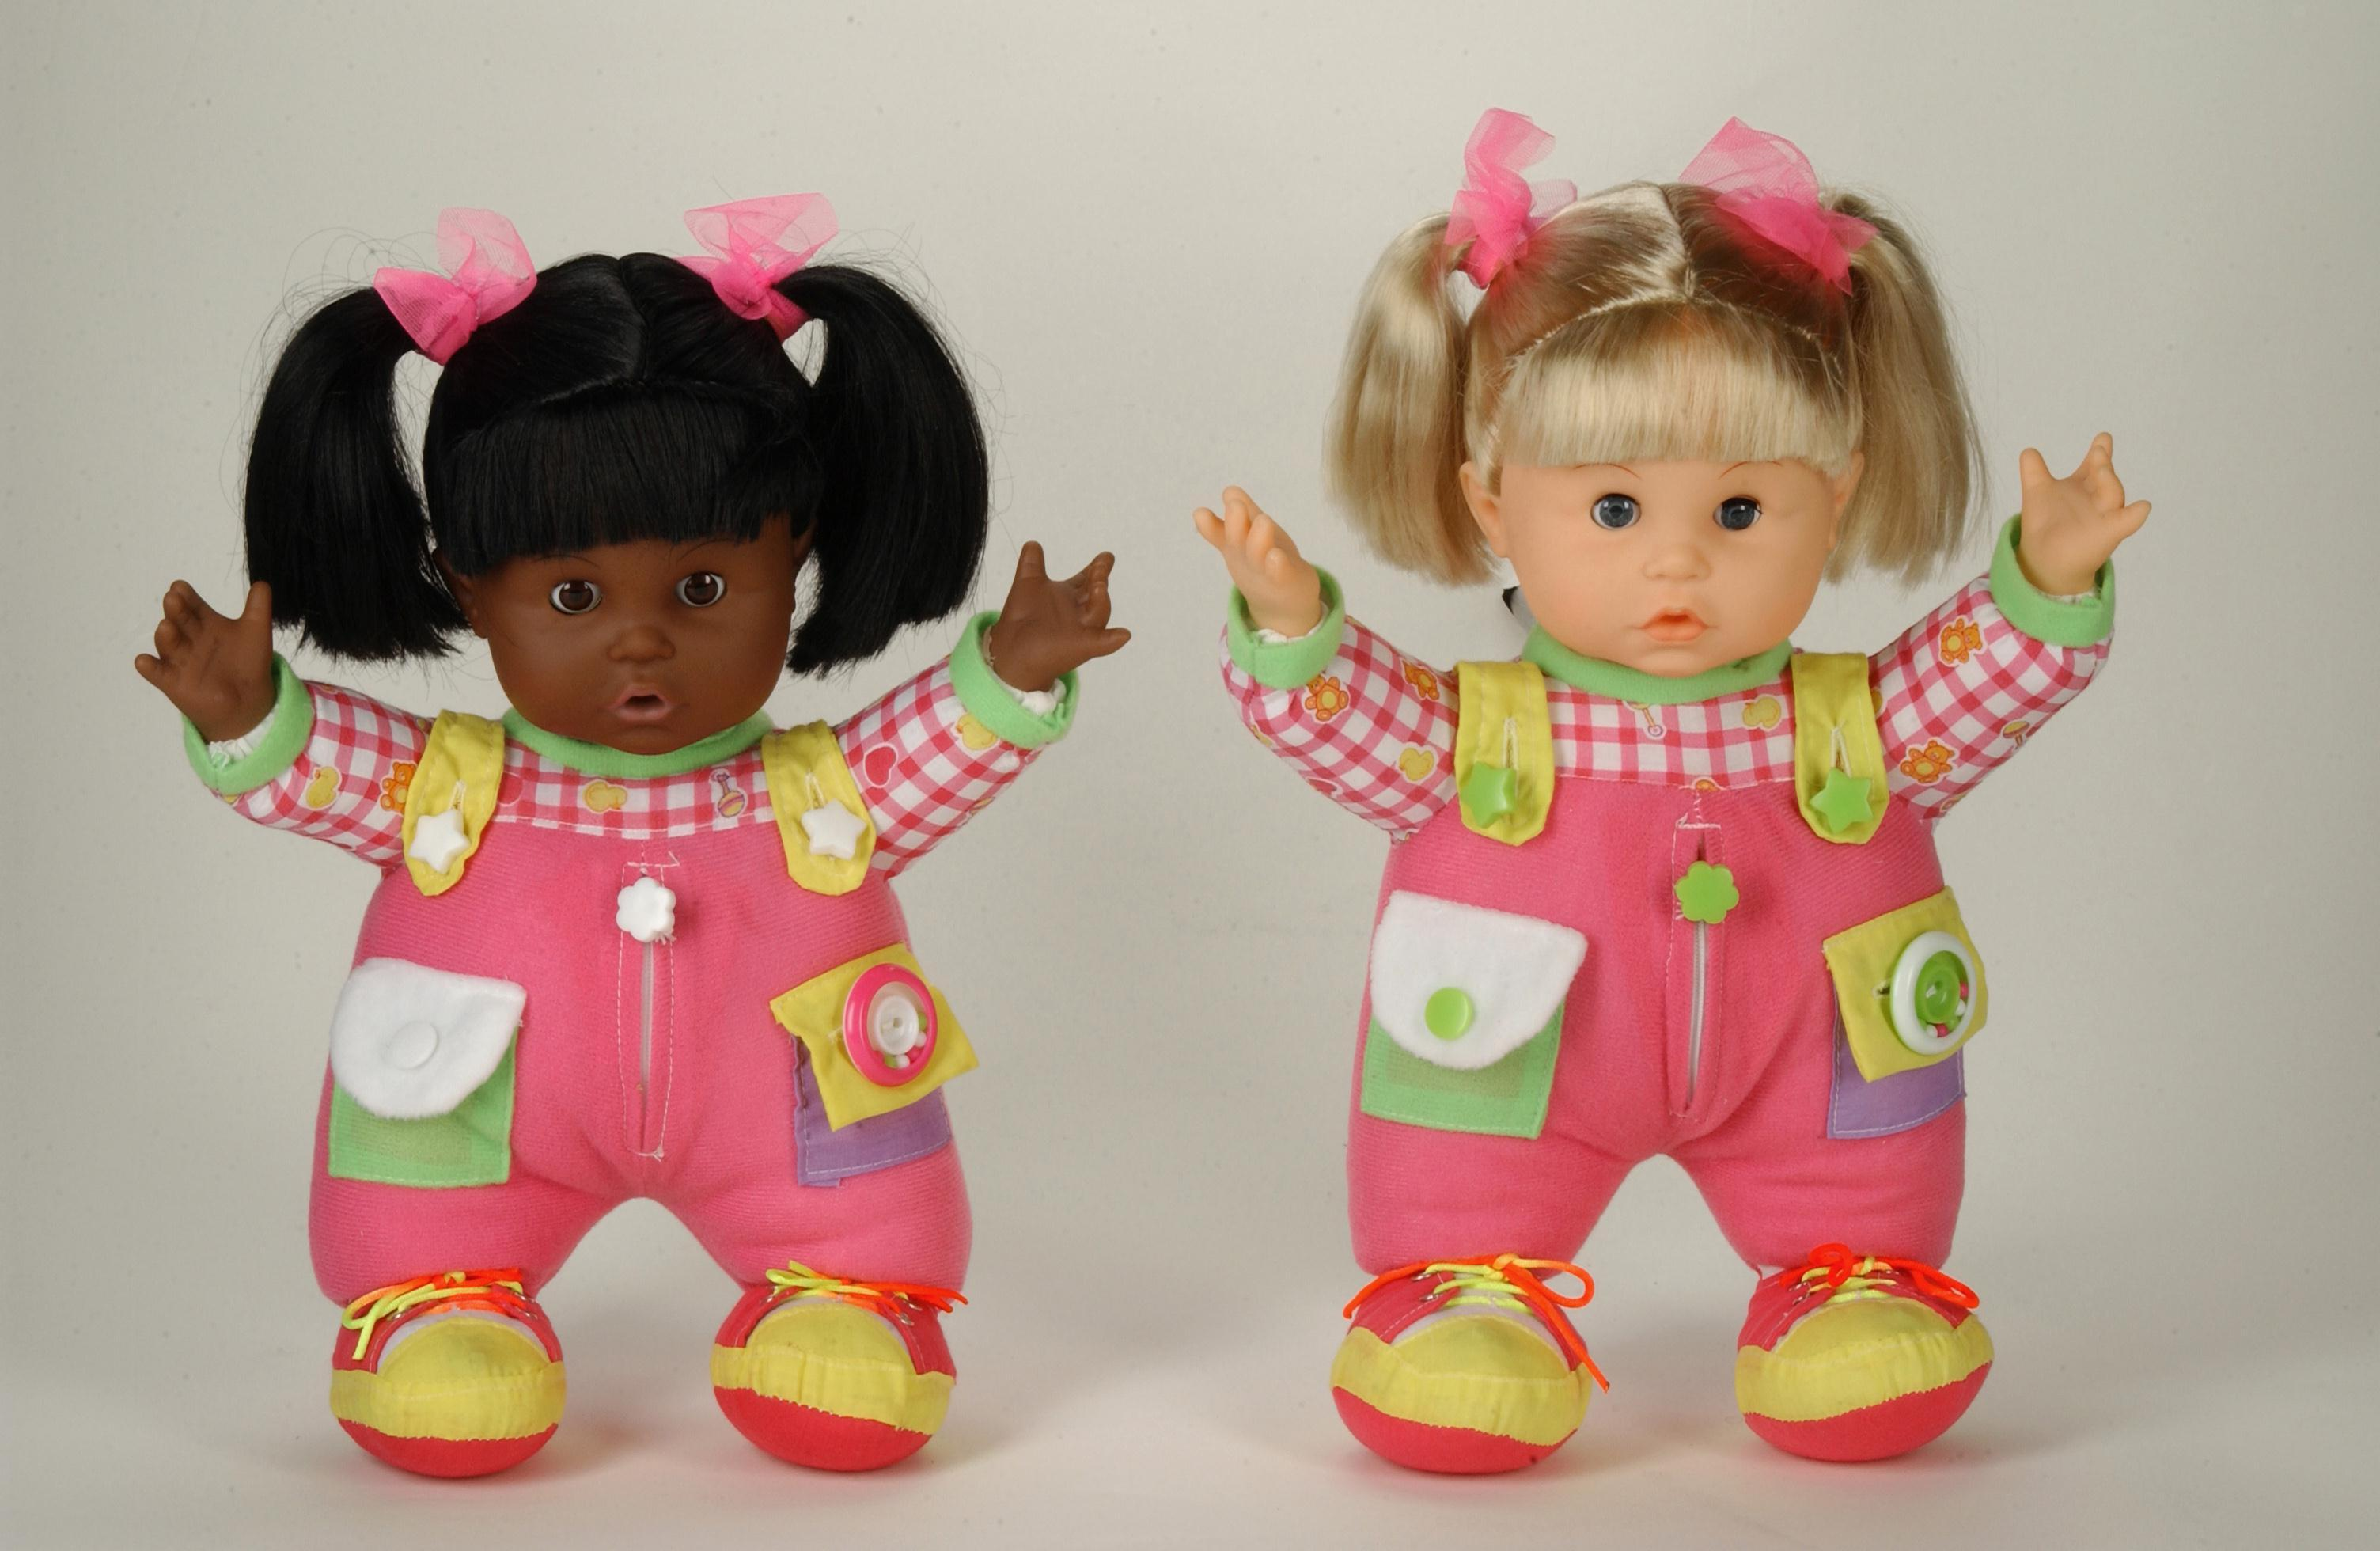 Lovee Doll Amp Toy Co : Lovee doll toy co inc recall of talking dolls